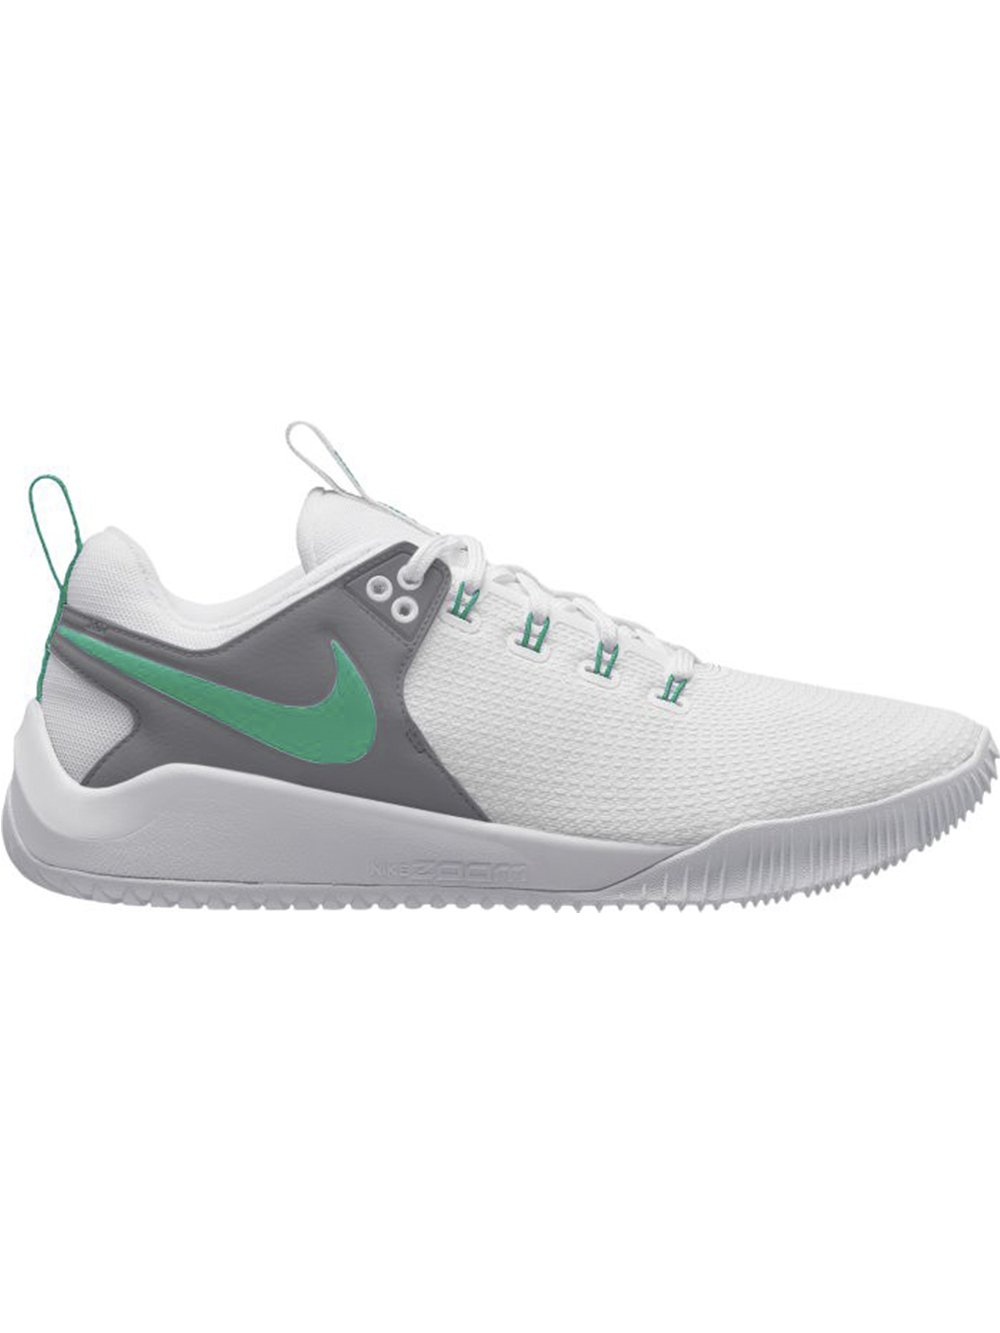 a437014dd95e Galleon - NIKE Women s Air Zoom Hyperace 2 Shoes